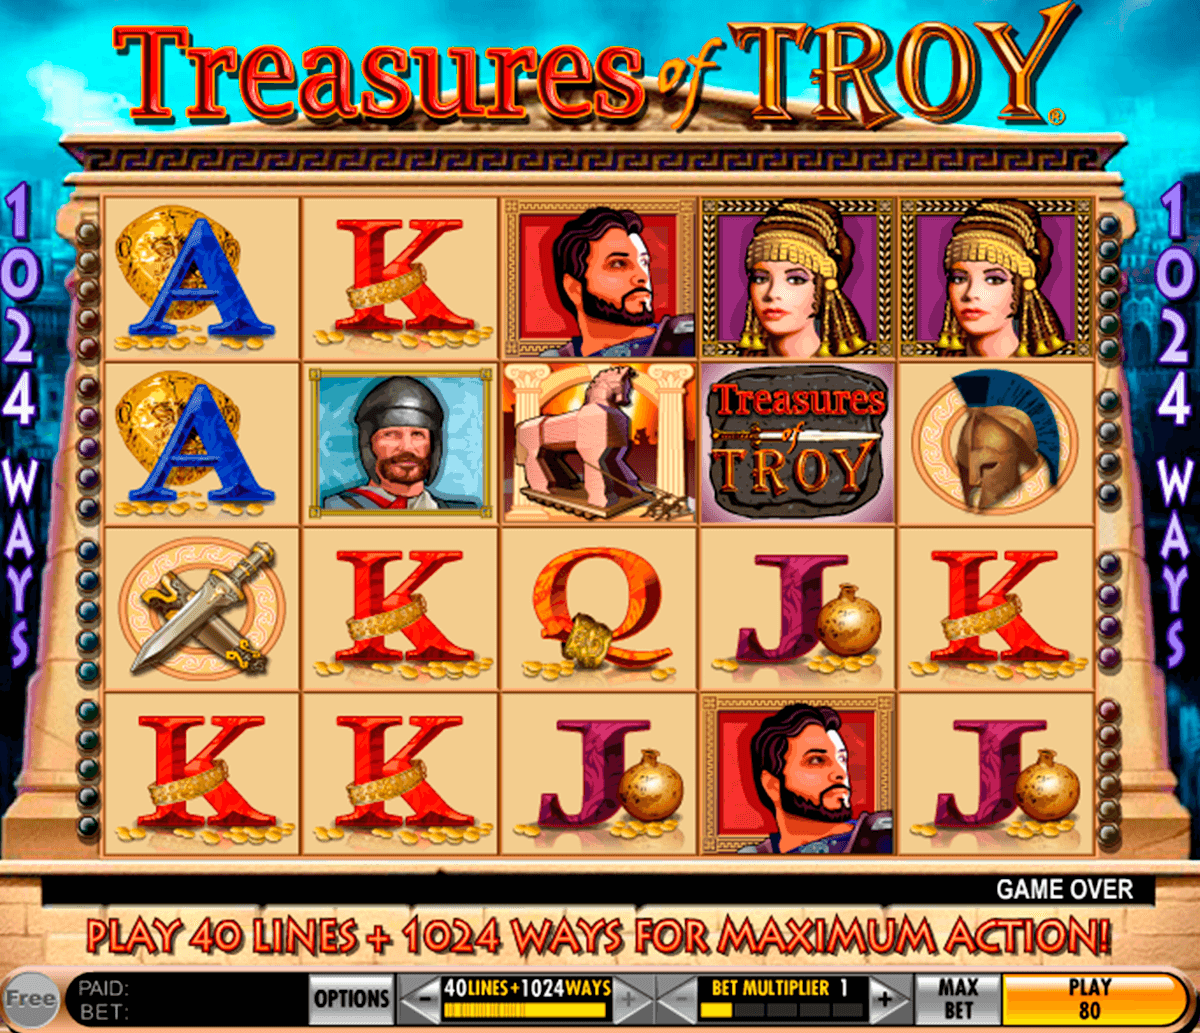 treasures of troy igt آلة السلوت